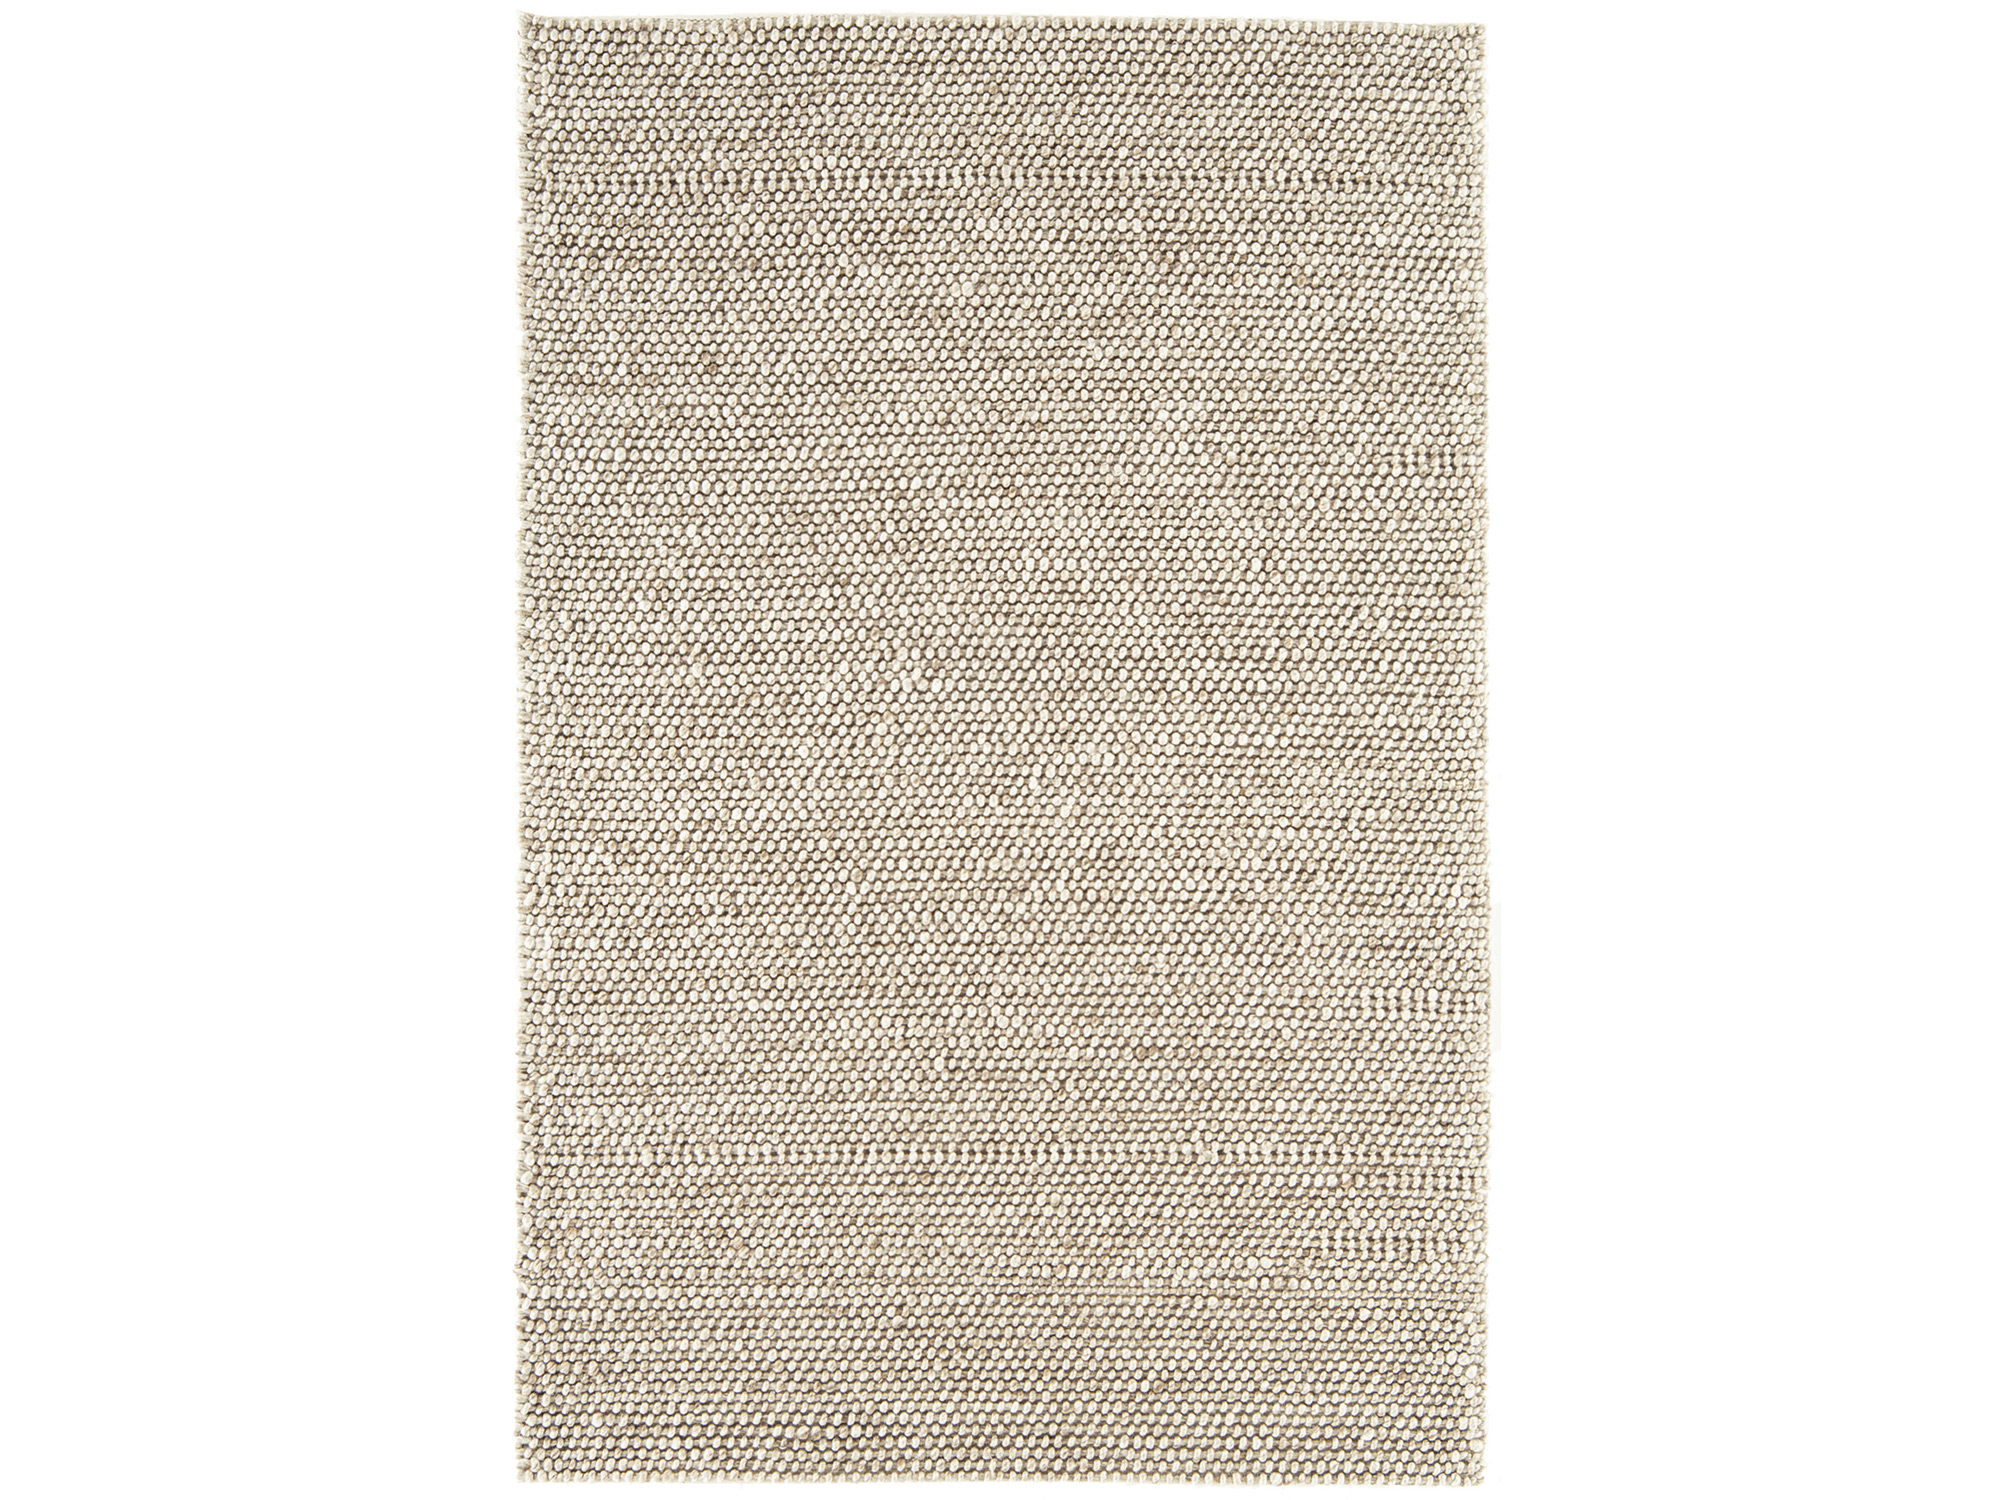 Shoreditch Rug, Cream, Large